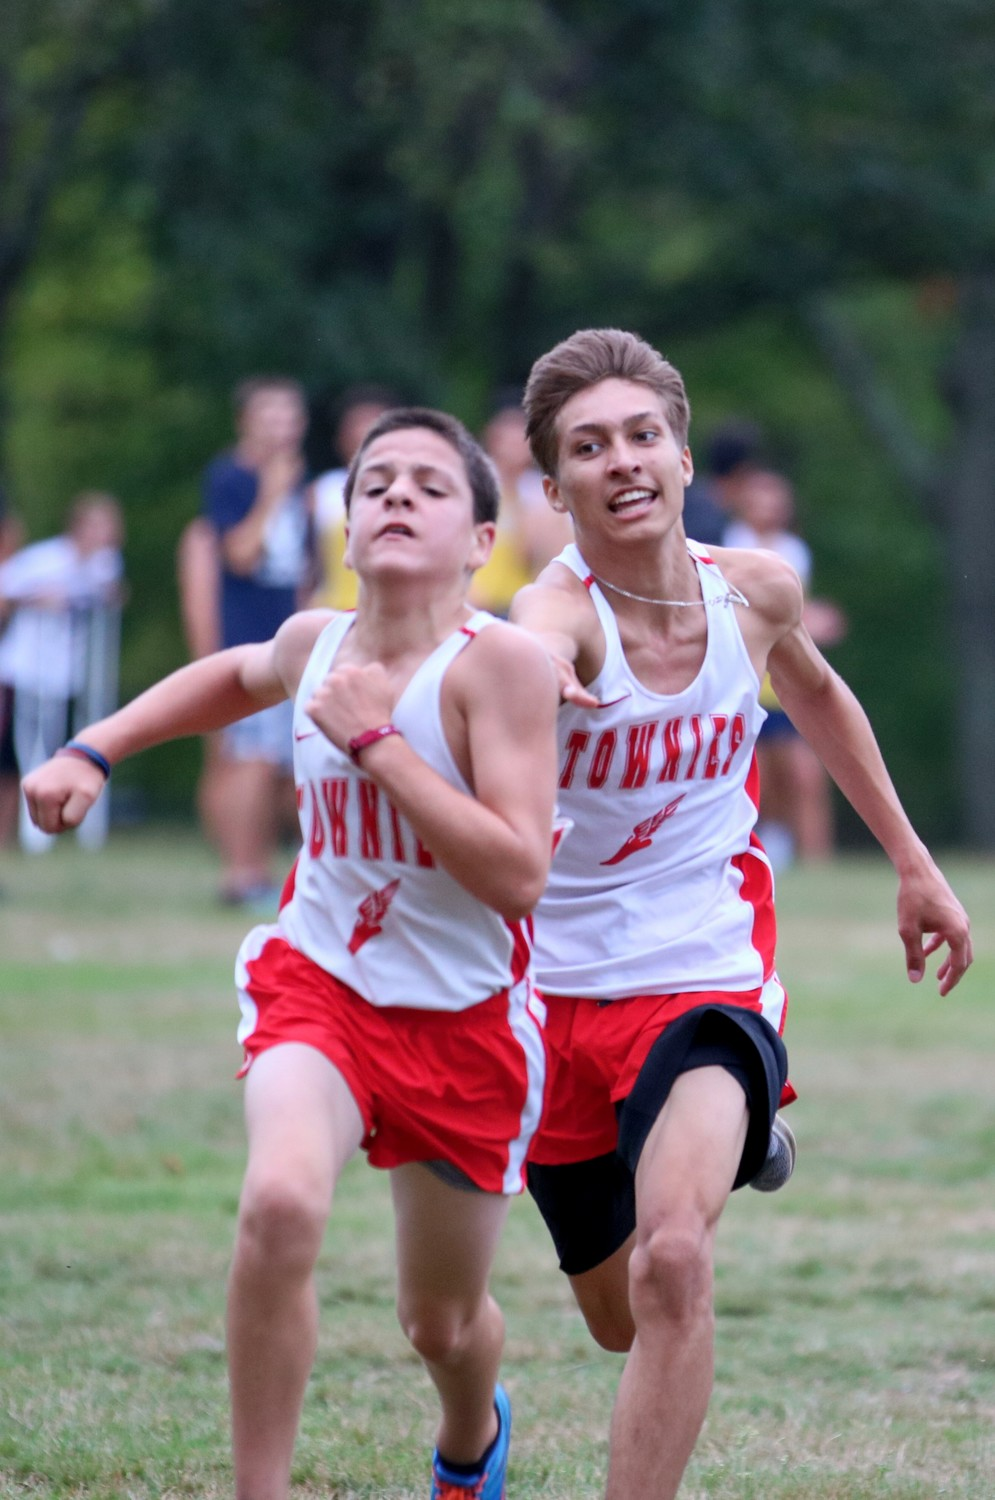 Cody Danz (front) and Jarin Bento (back) finishing strong for the Townies vs St. Raphael and Barrington. Photo Paul Tumidajski.